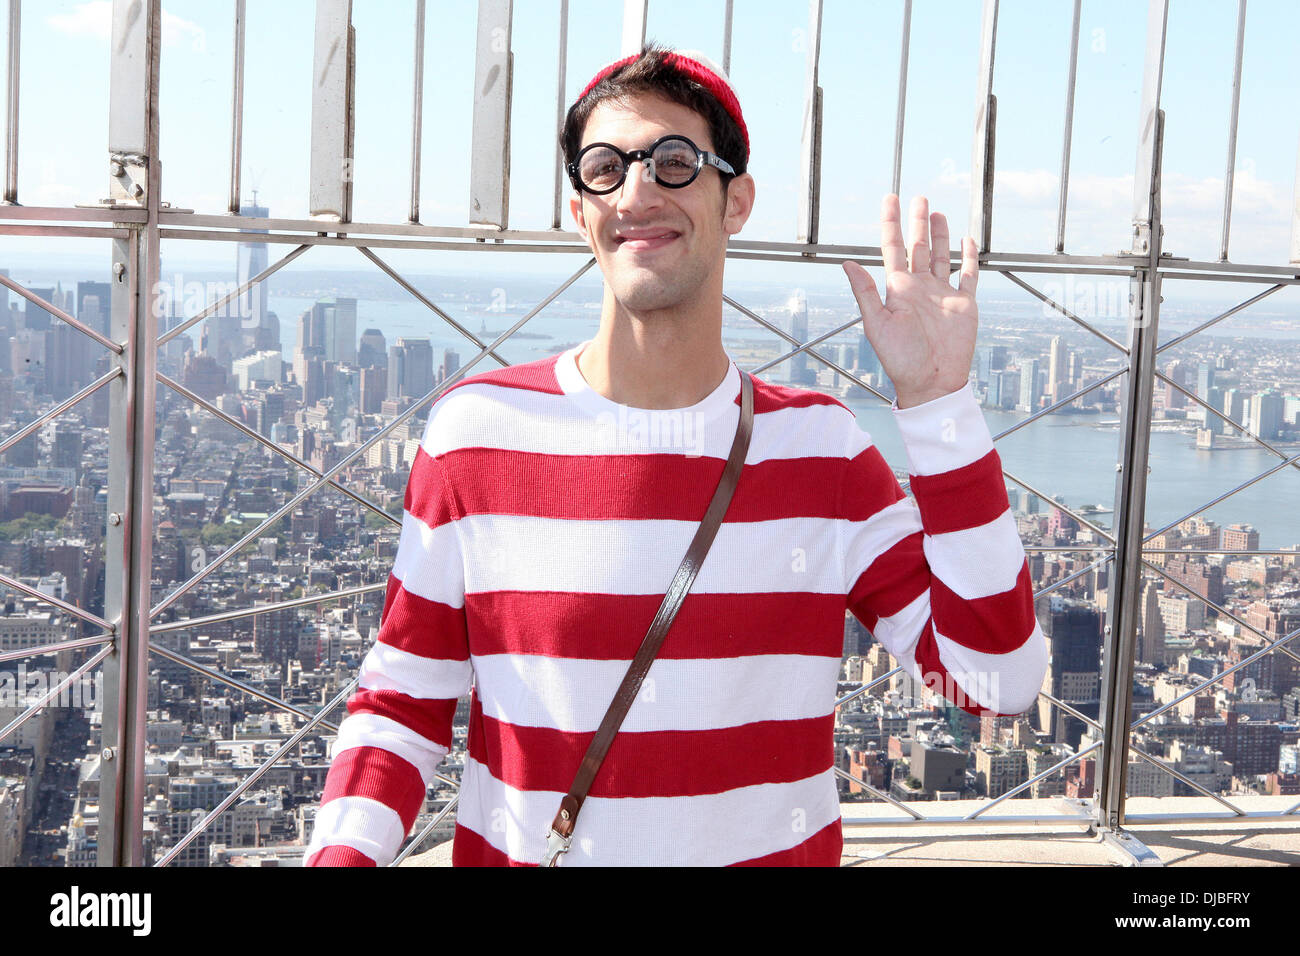 6383d6afa9 Whereu0027s Waldo Character In Costume The Empire State Building Celebrates  The 25th Anniversary Of Whereu0027s Waldo (Whereu0027s Wally )